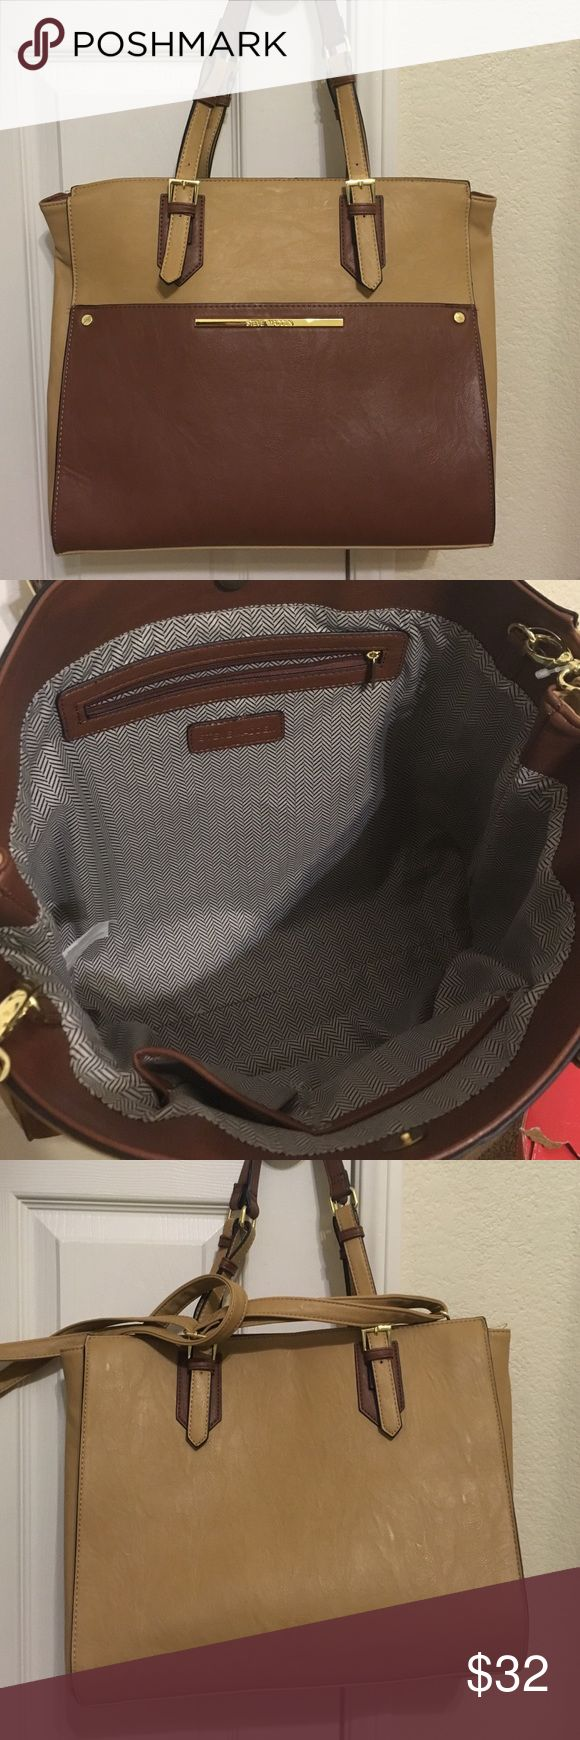 Steve Madden book/tote bag Great condition. Used in college for my computer and books. Steve Madden Bags